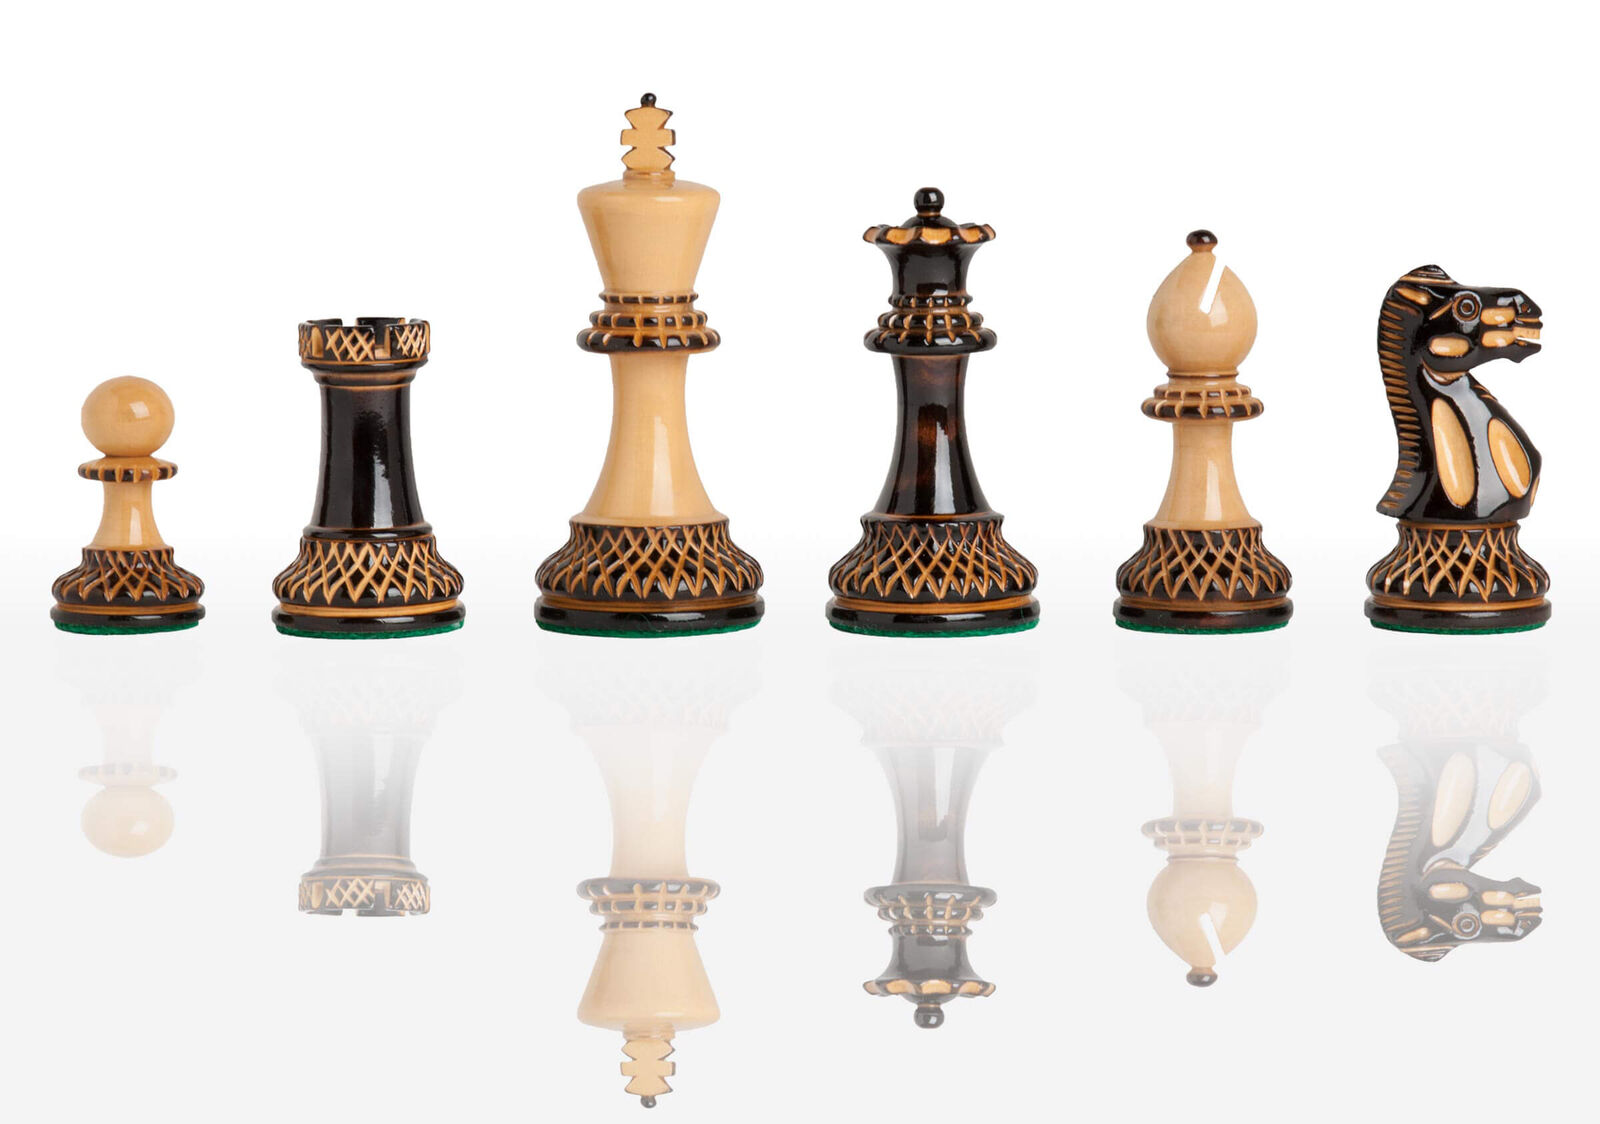 USCF Sales The Burnt Grandmaster Chess Set - Pieces Only - 4.0  King